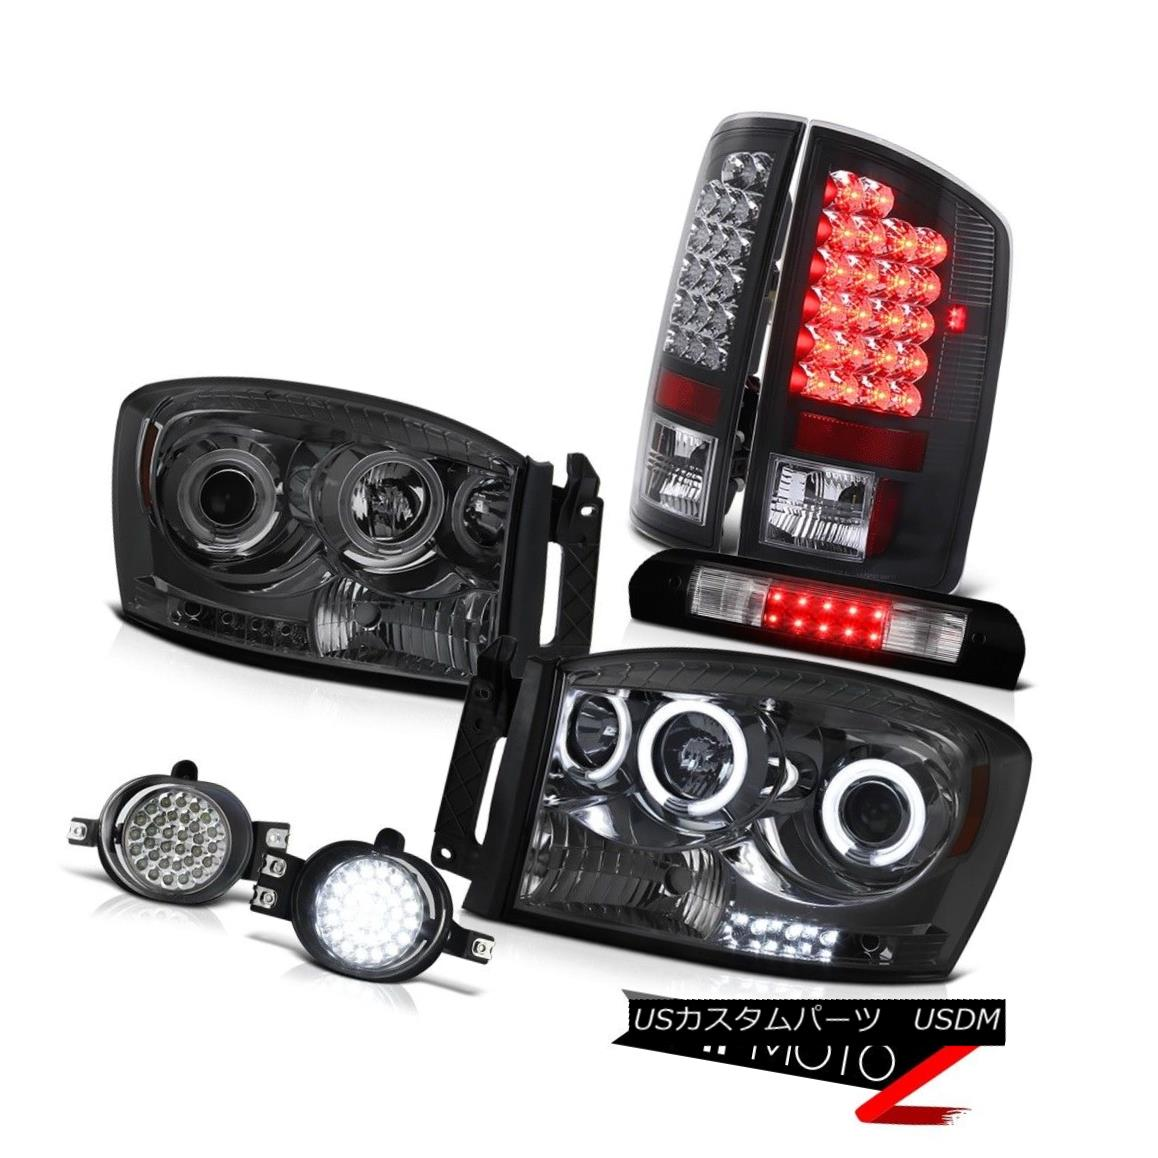 ヘッドライト Brightest CCFL Headlights L.E.D Tail Lights DRL Fog Kit 2006 Dodge Ram Magnum V8 最も明るいCCFLヘッドライトL.E.DテールライトDRLフォグキット2006 Dodge Ram Magnum V8